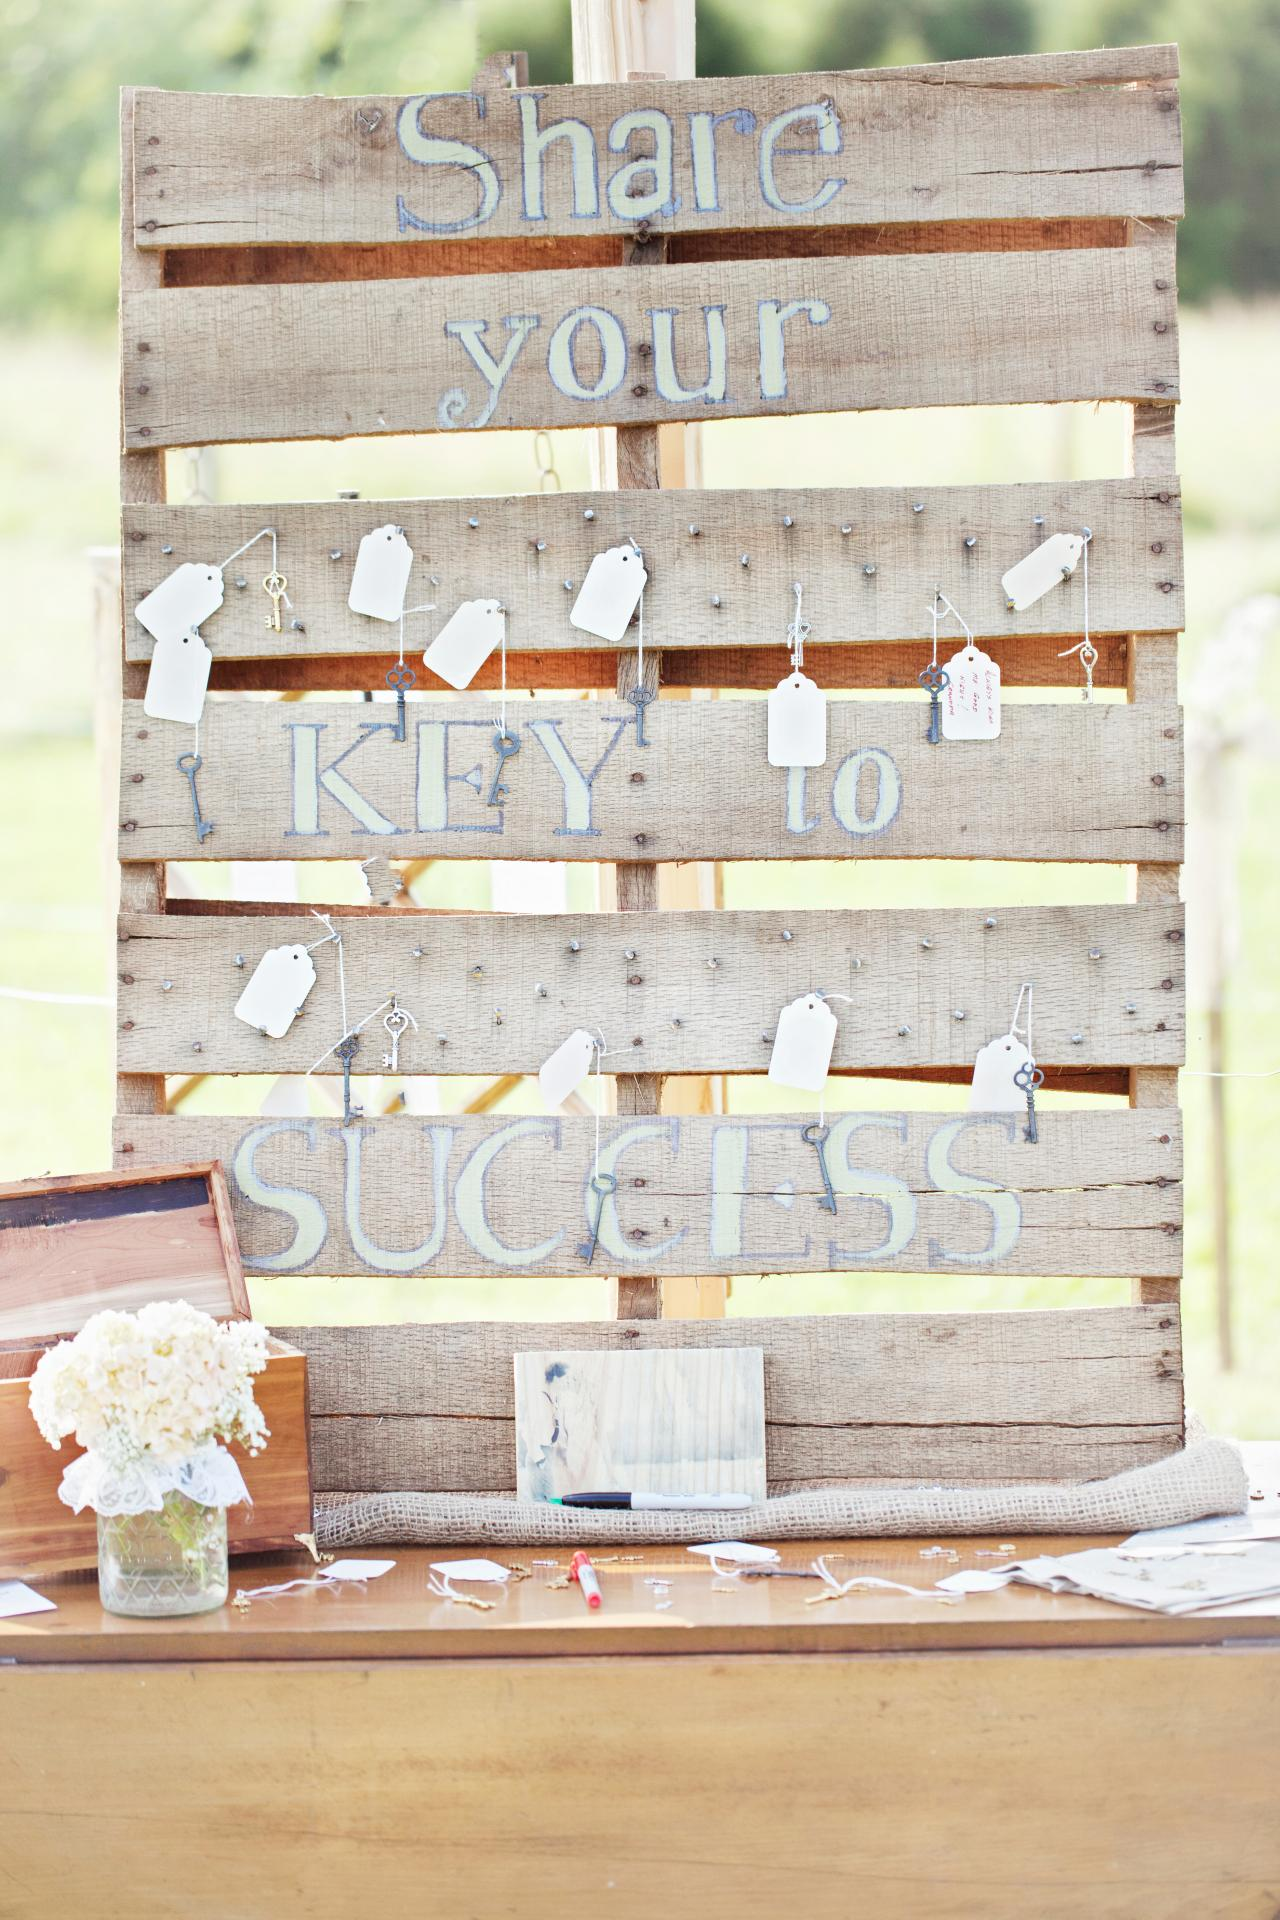 12 Easy Diy Pallet Projects Diy Network Blog Made